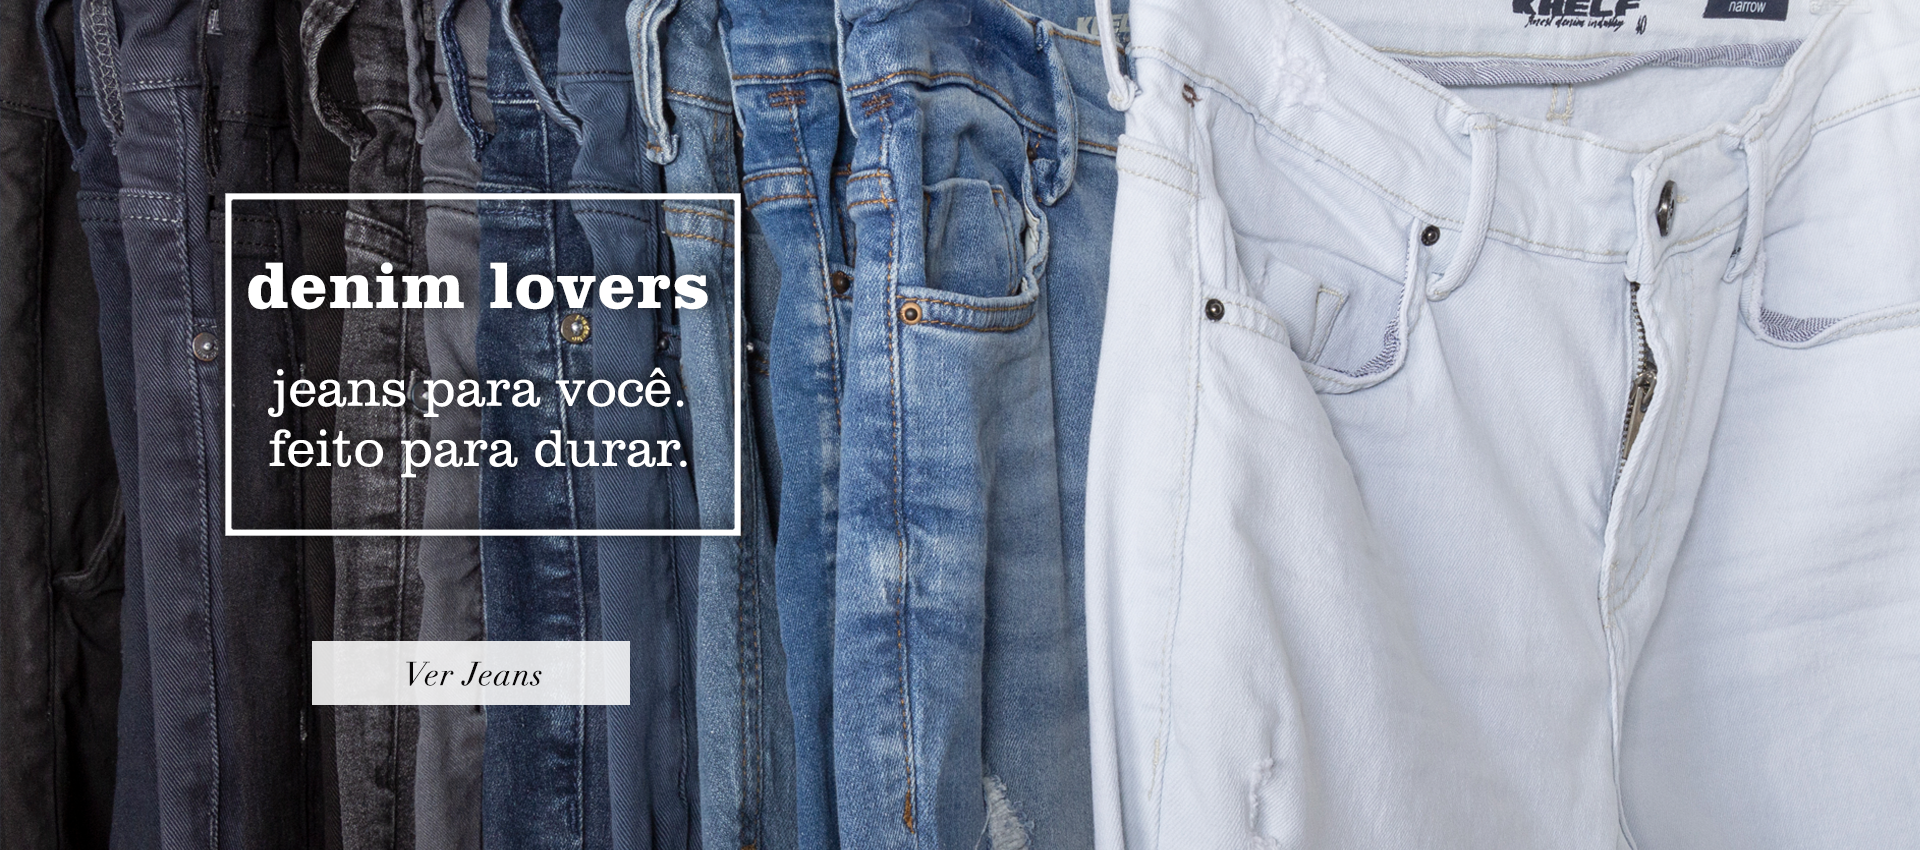 Denim Lovers